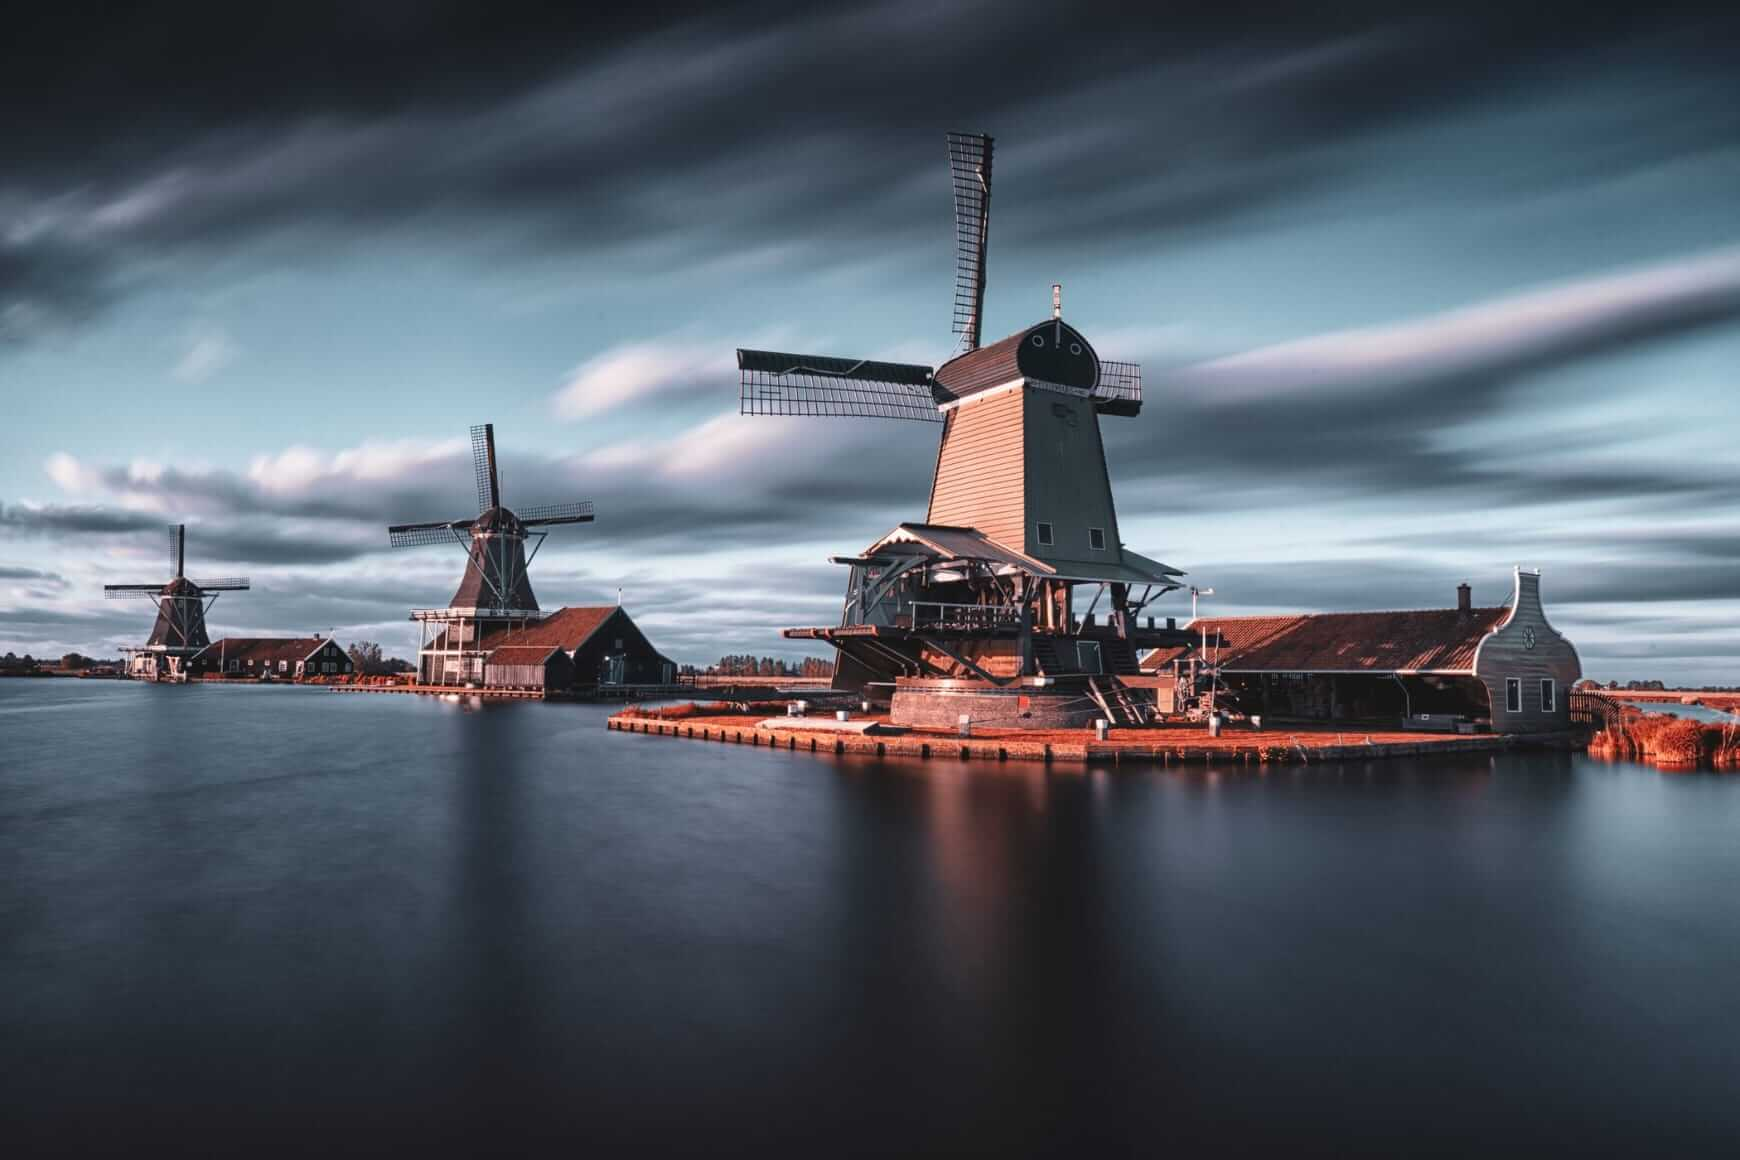 Three windmills next to water with dark sky